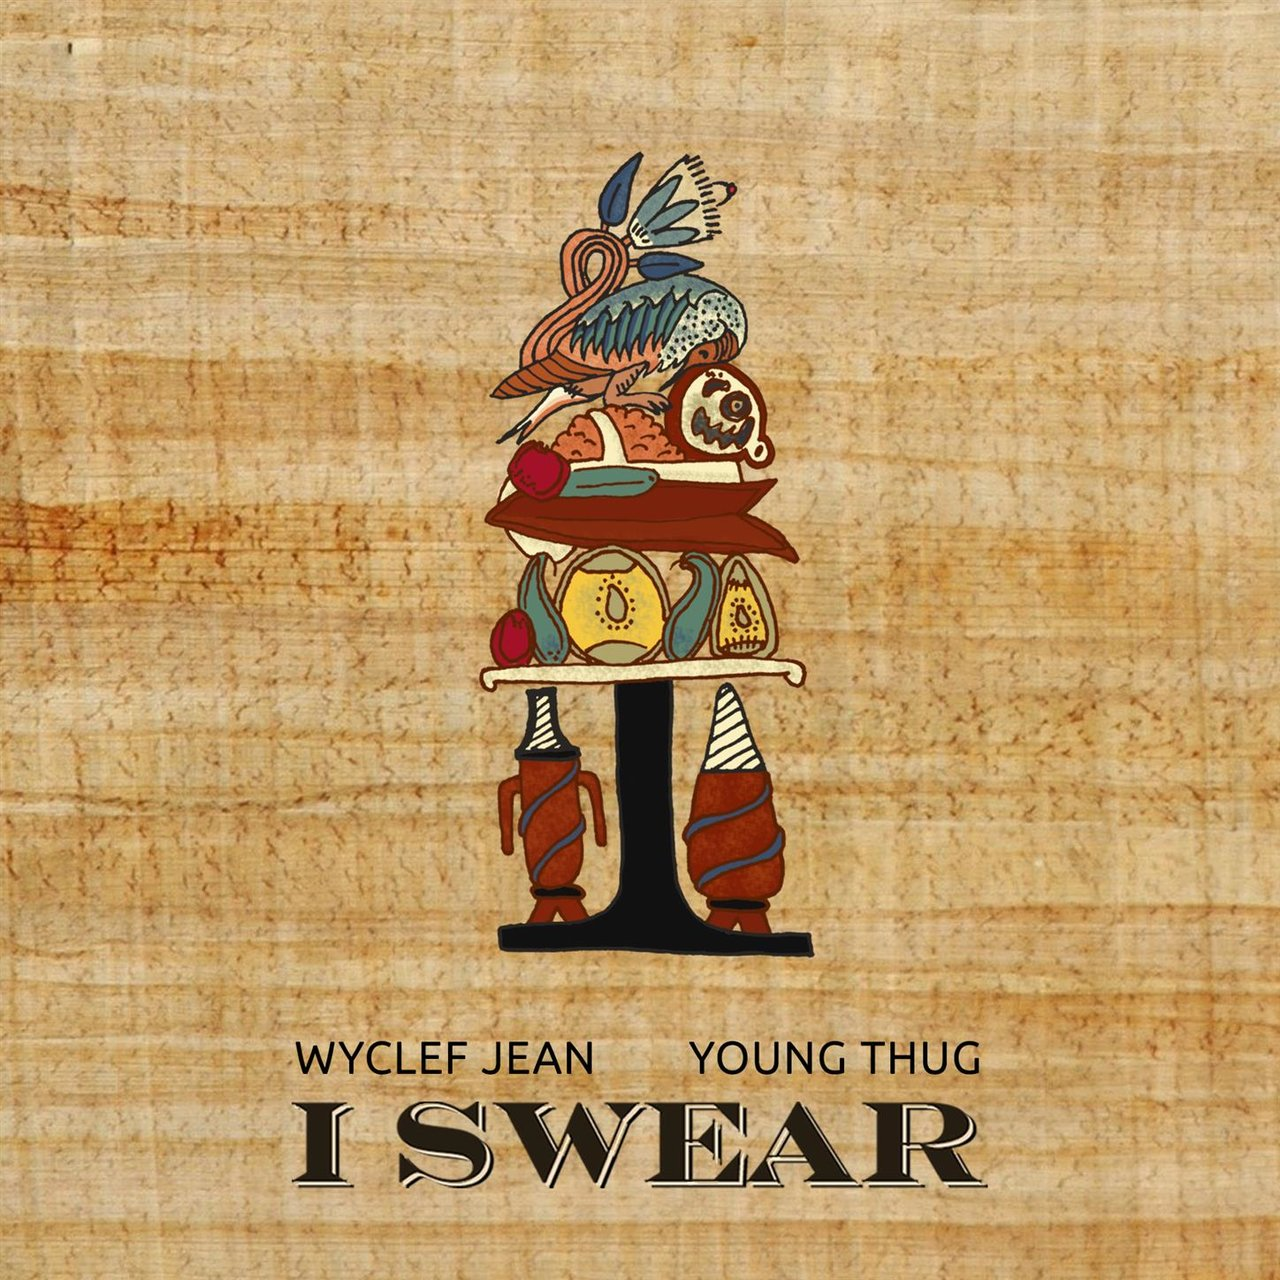 I Swear (feat. Young Thug)